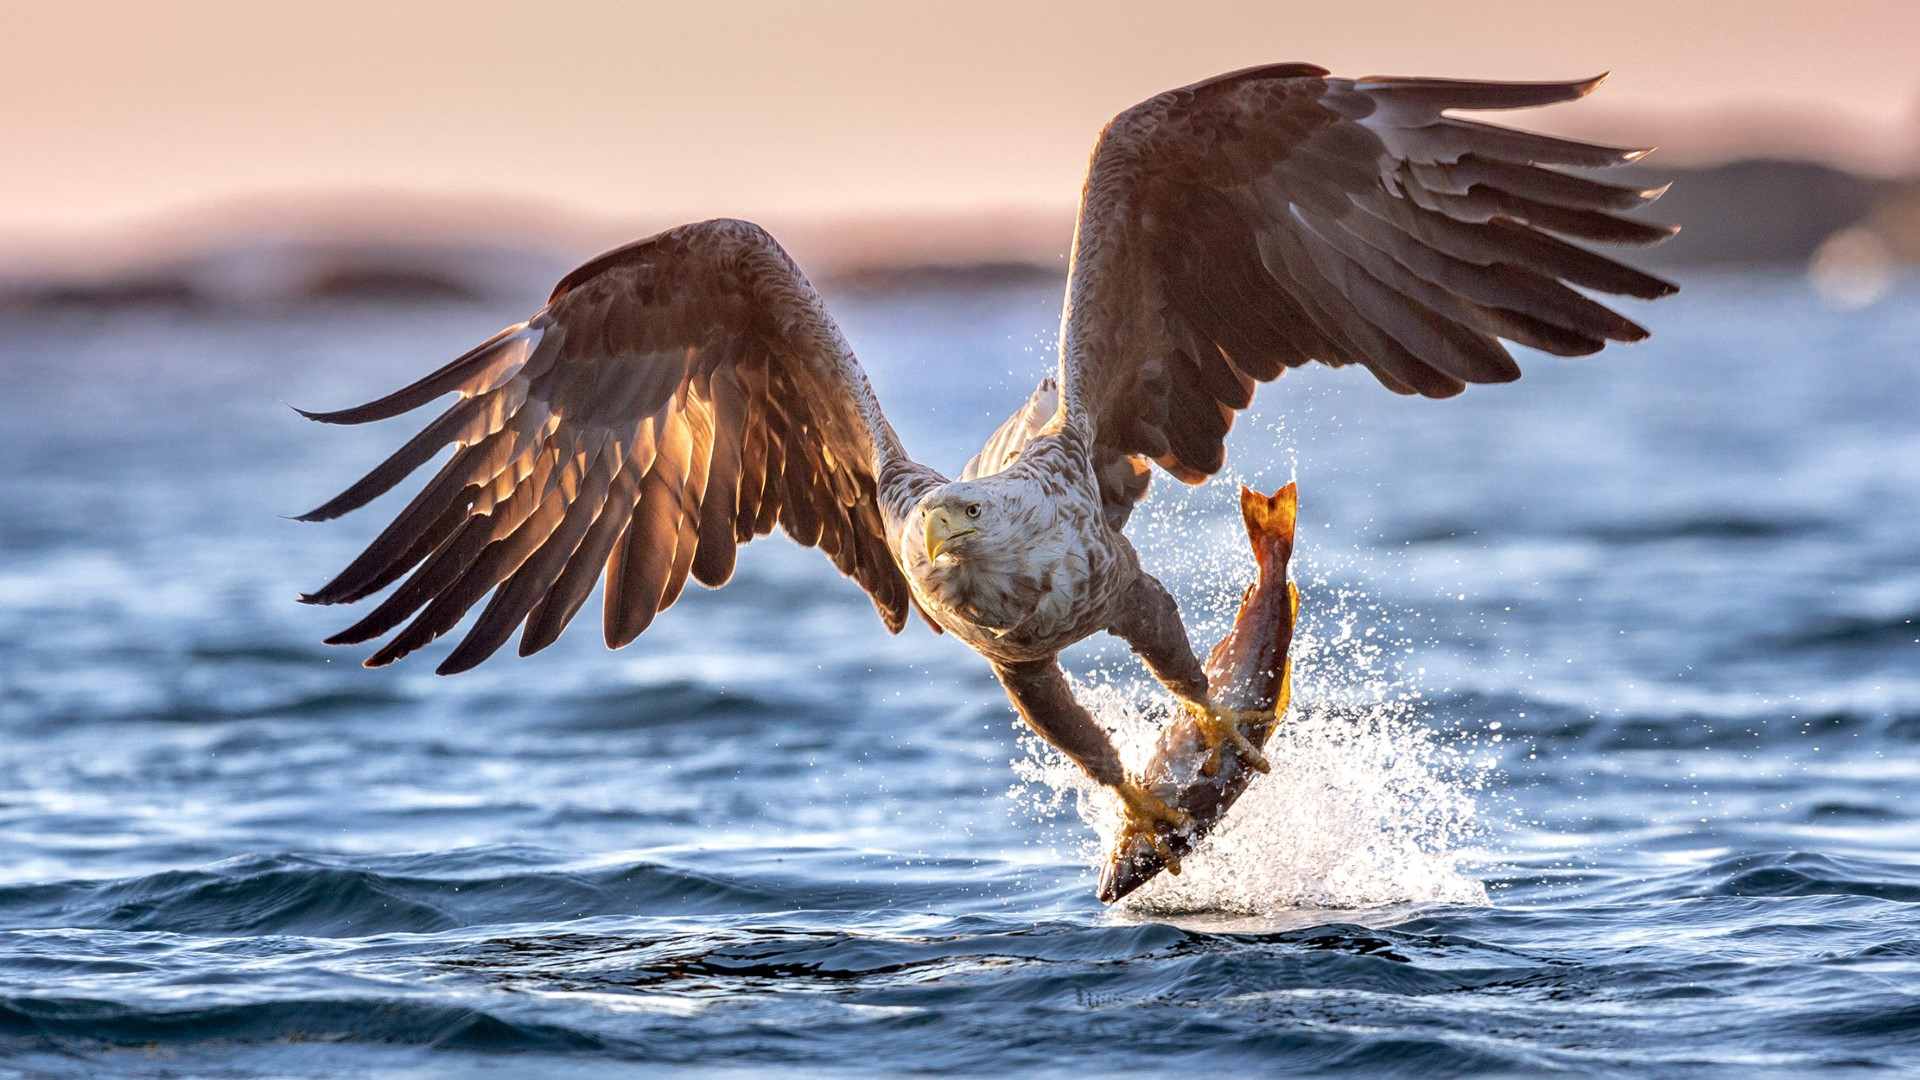 day-8_varlandet_sea-eagle-catching-a-fish_simen-solberg-pedersen_gettyimages